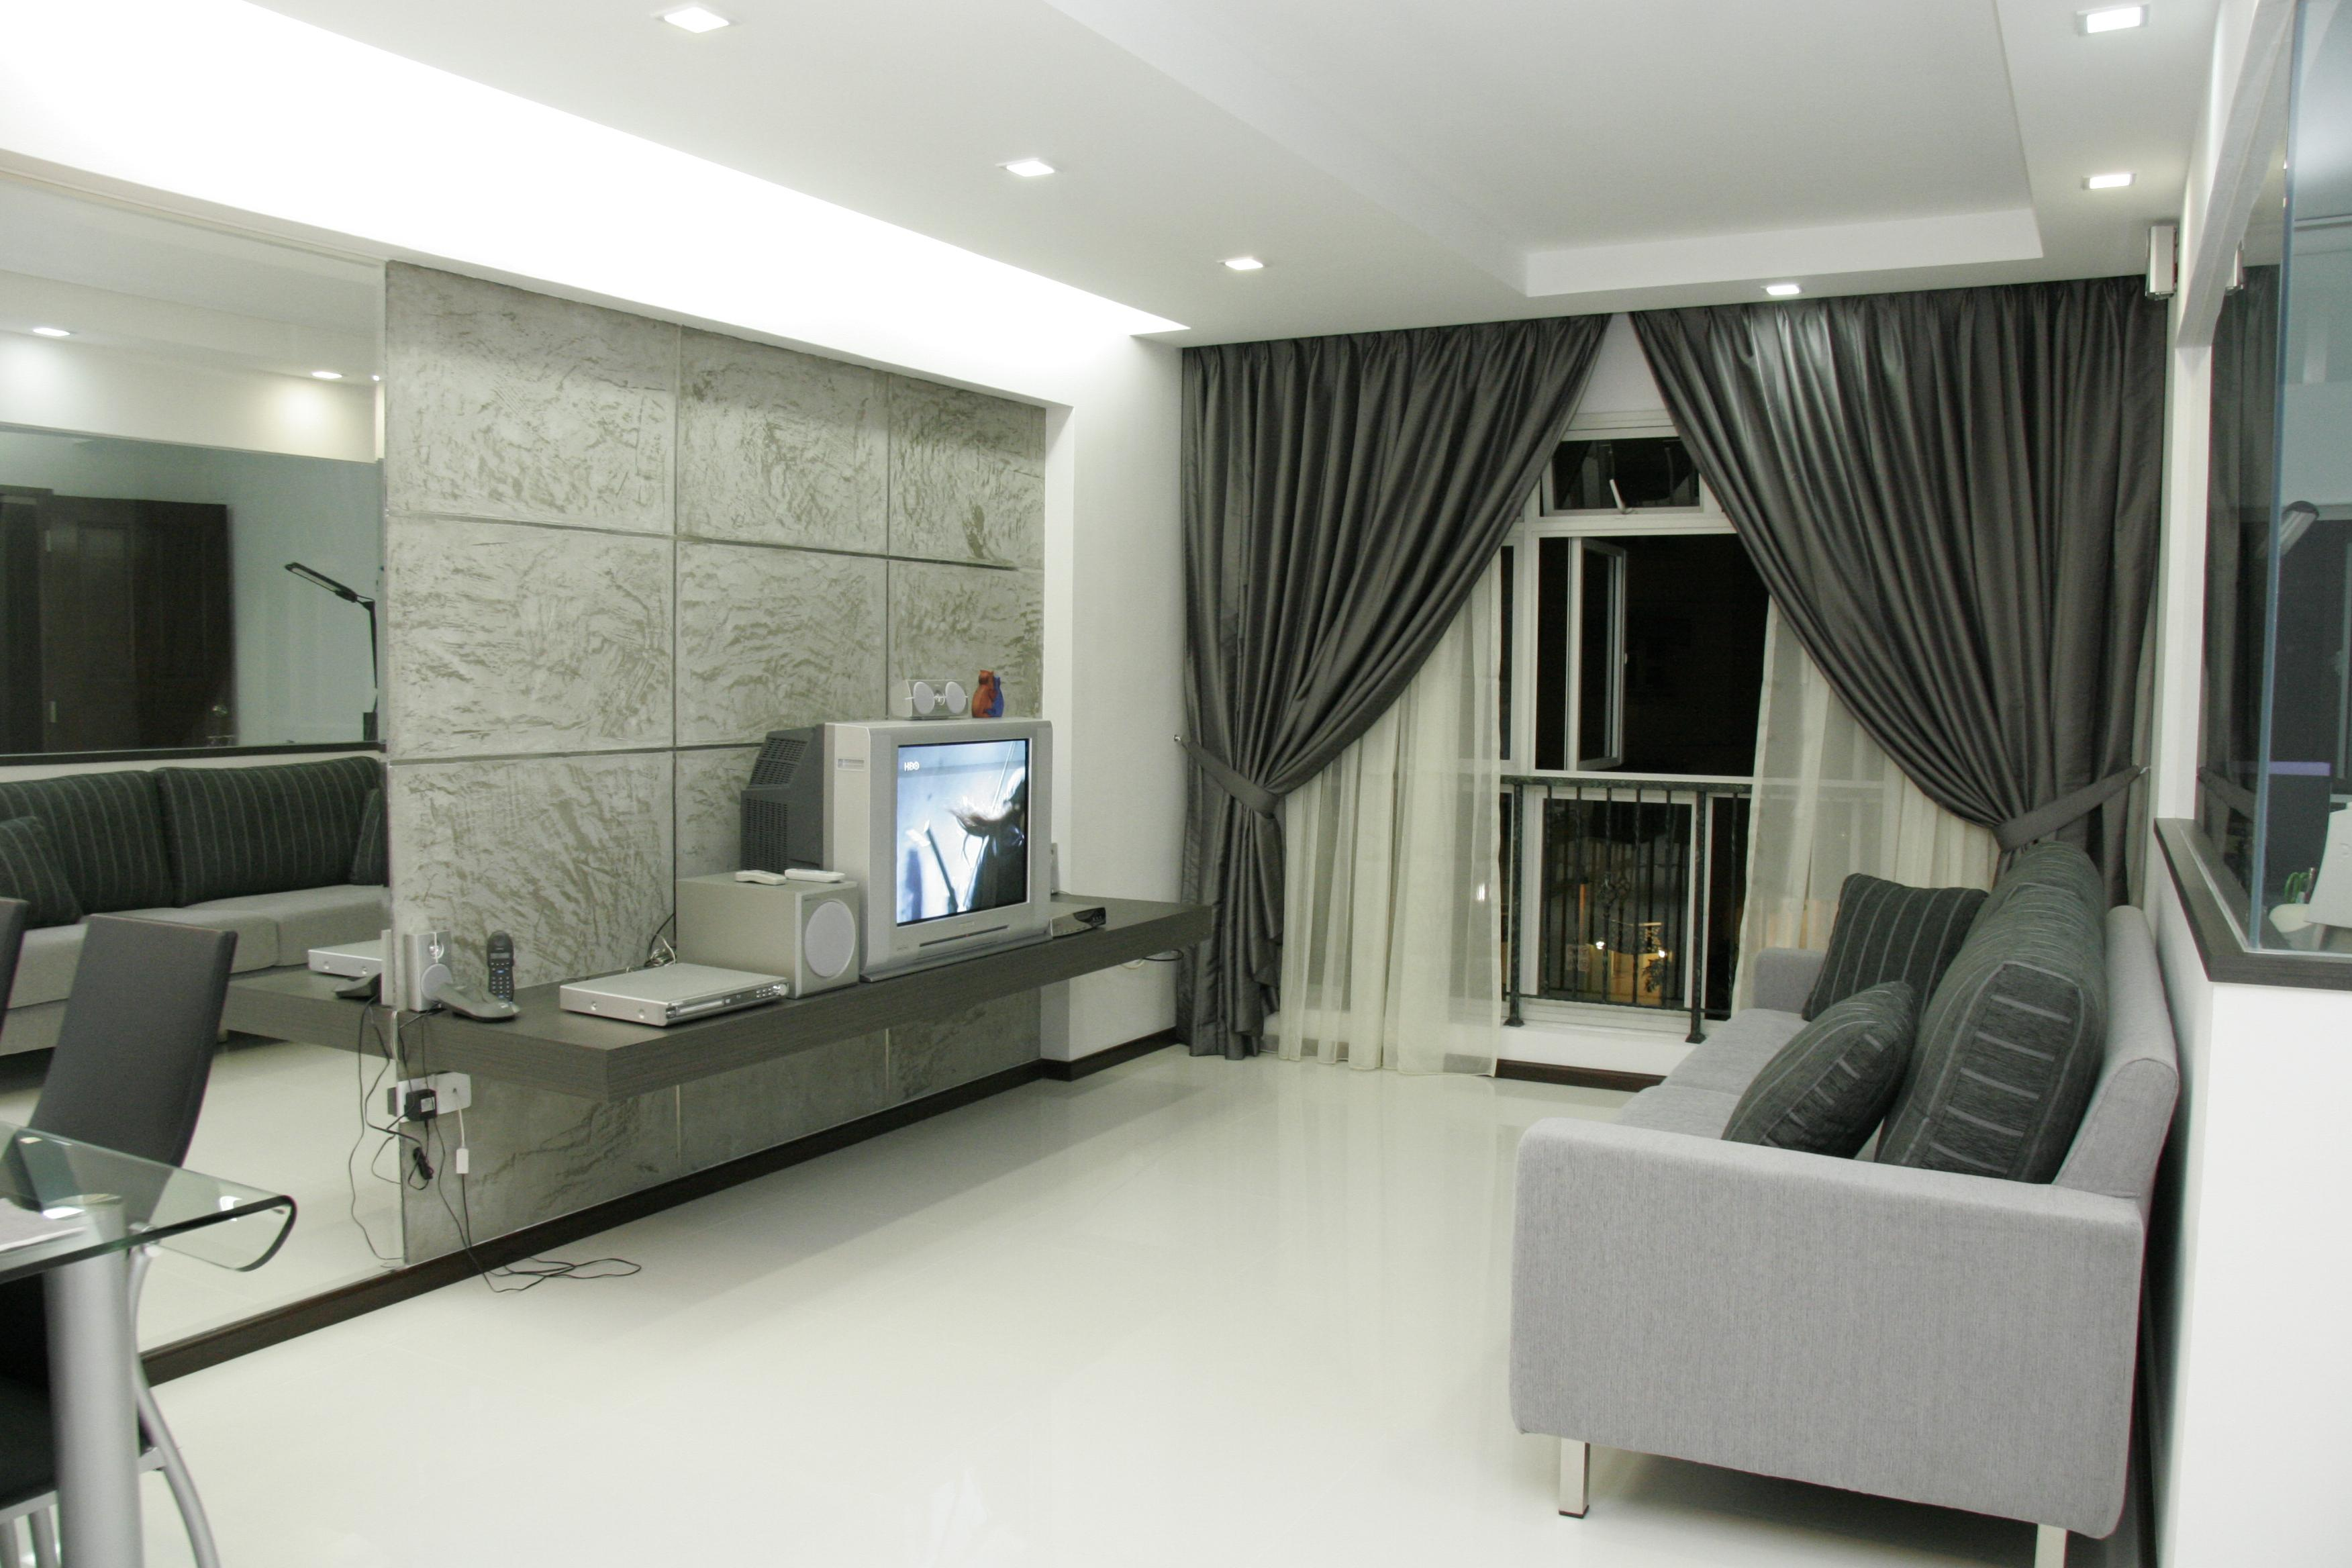 offered competitive prices for interior design services